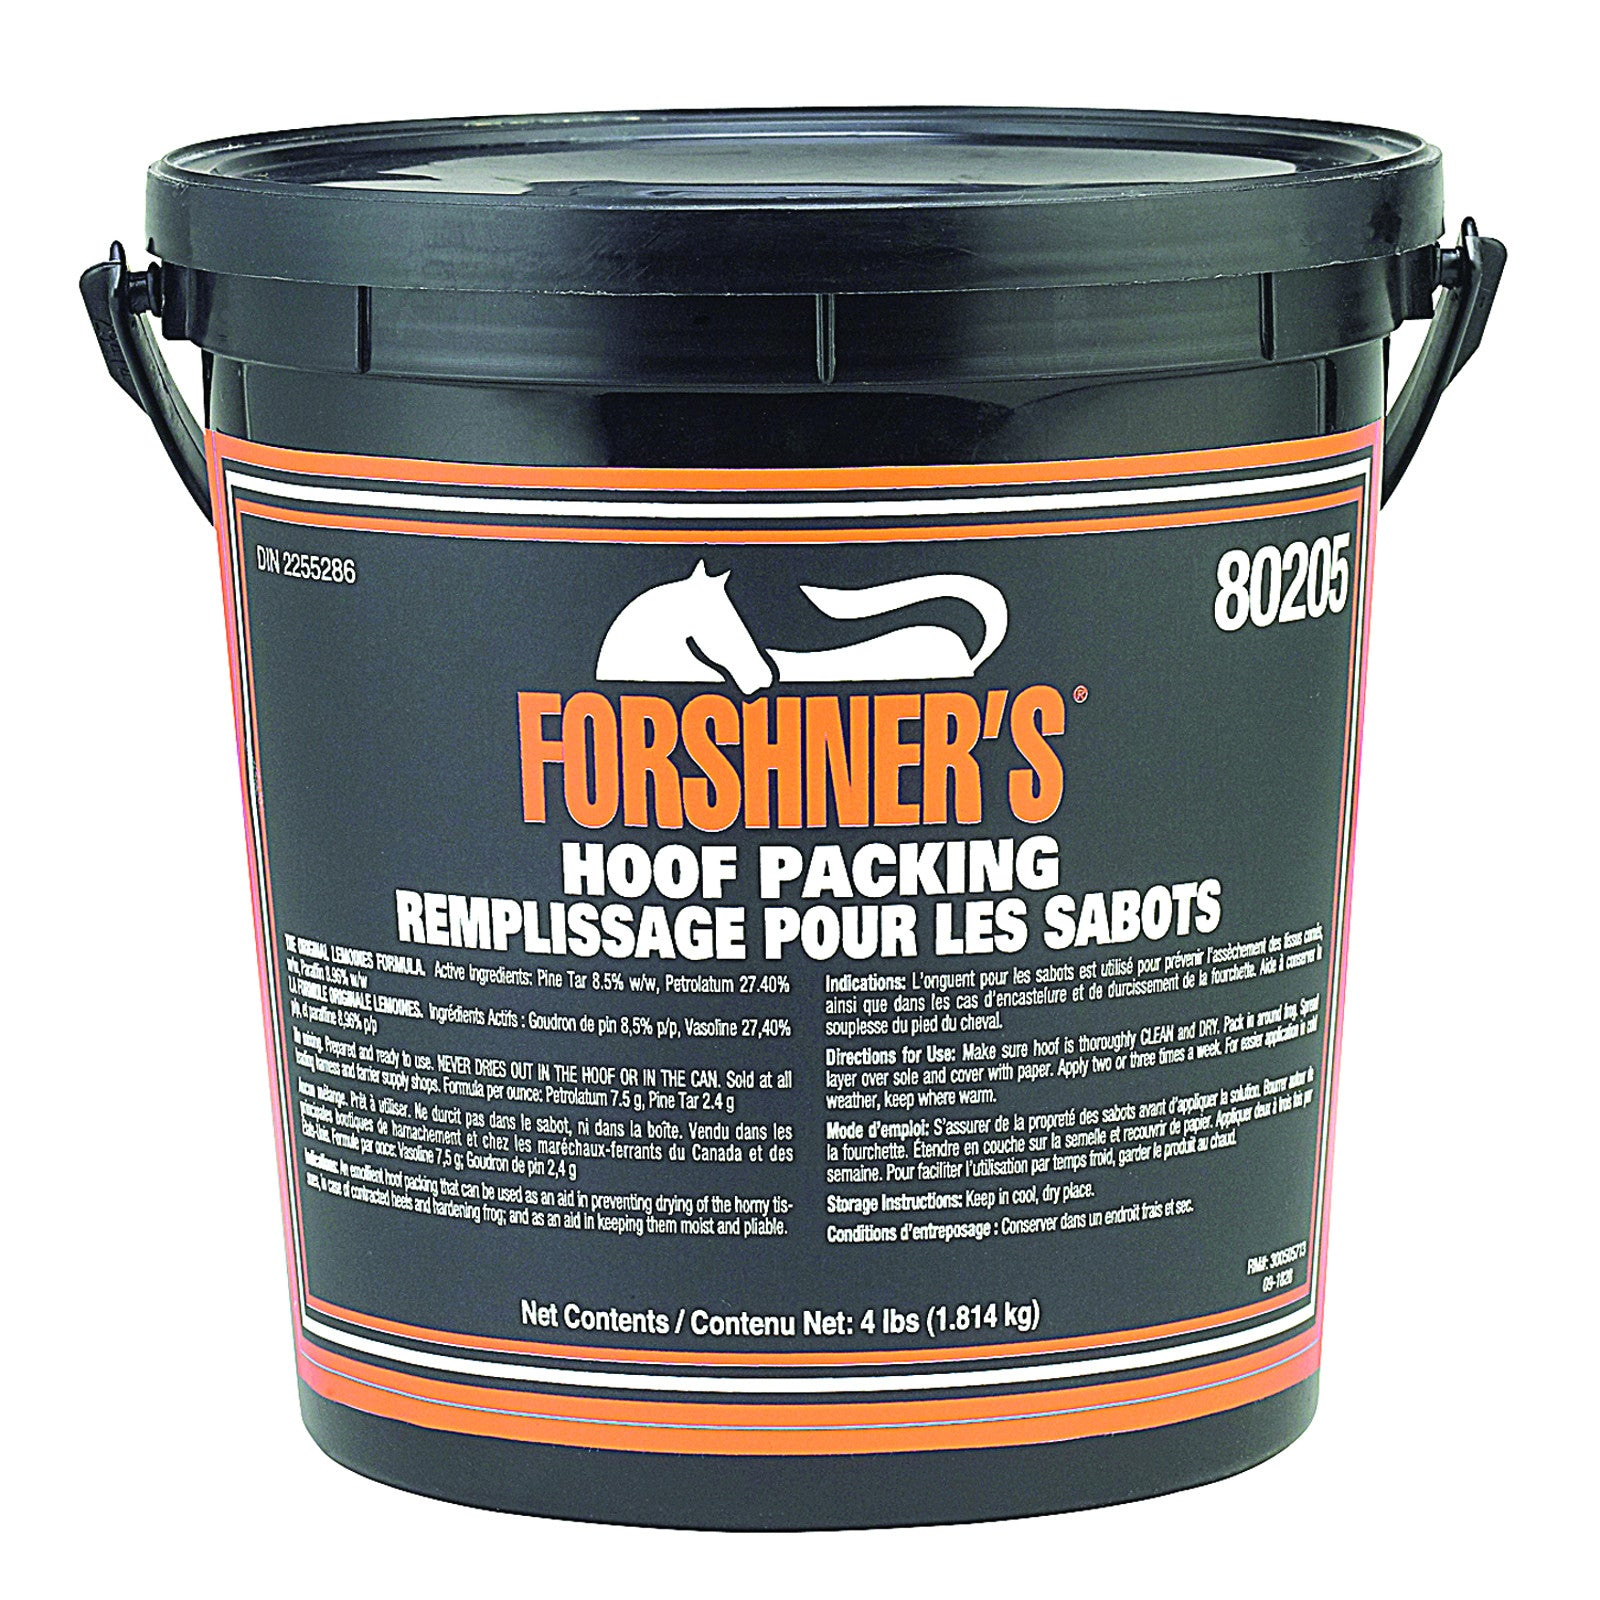 Forshner's Medicated Hoof Packing- 4lb